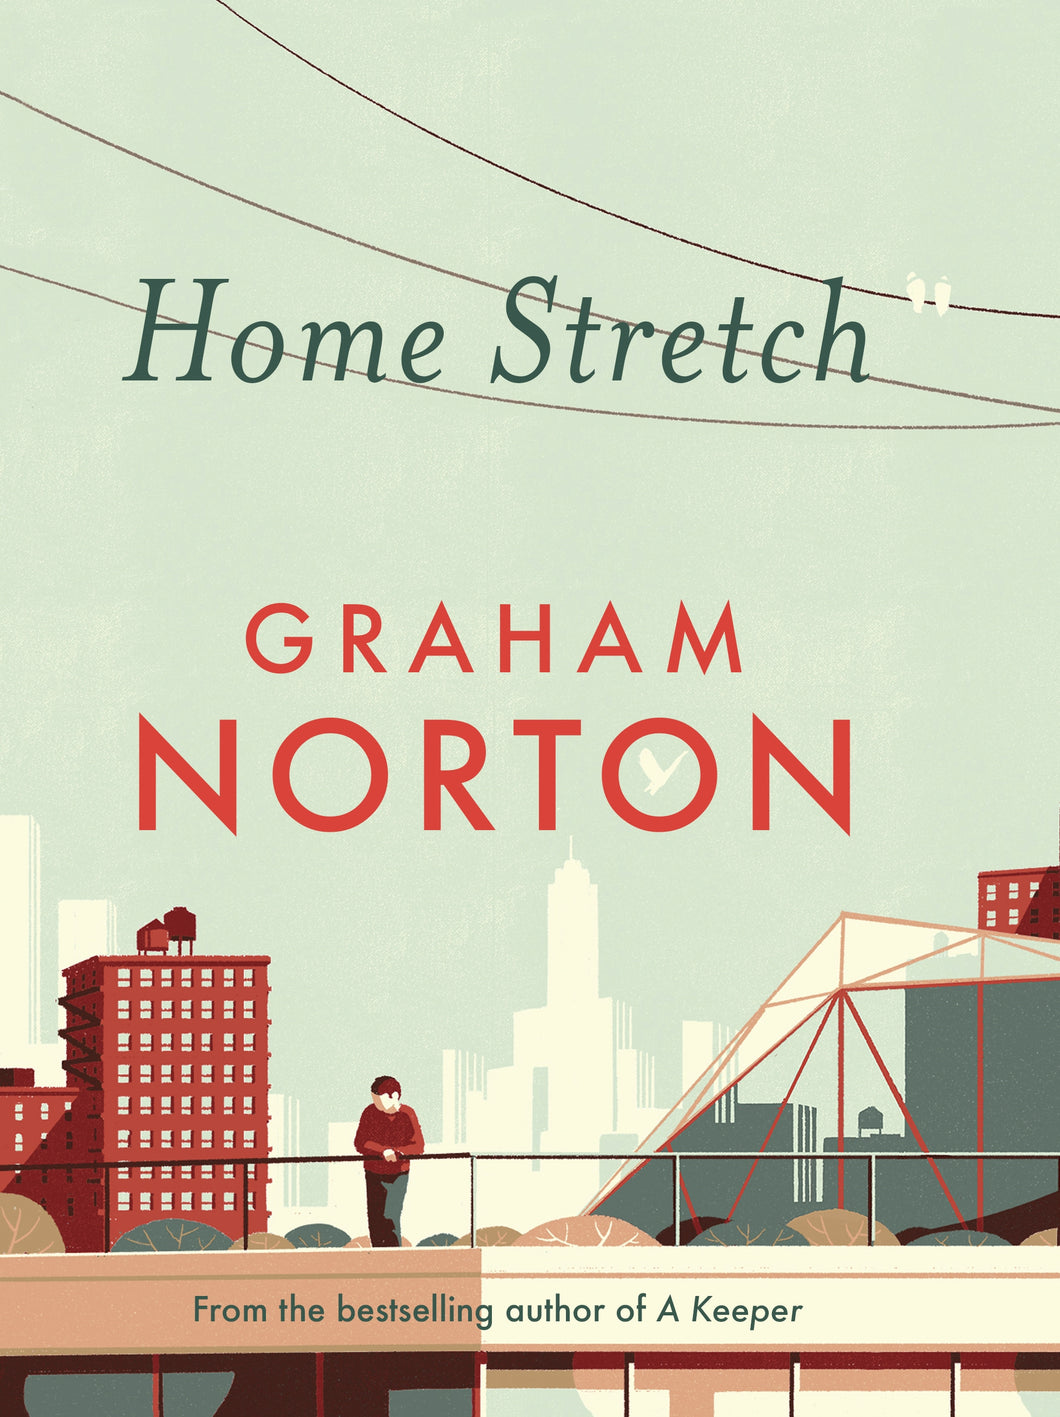 Home Stretch (Hardback) - Graham Norton - SIGNED